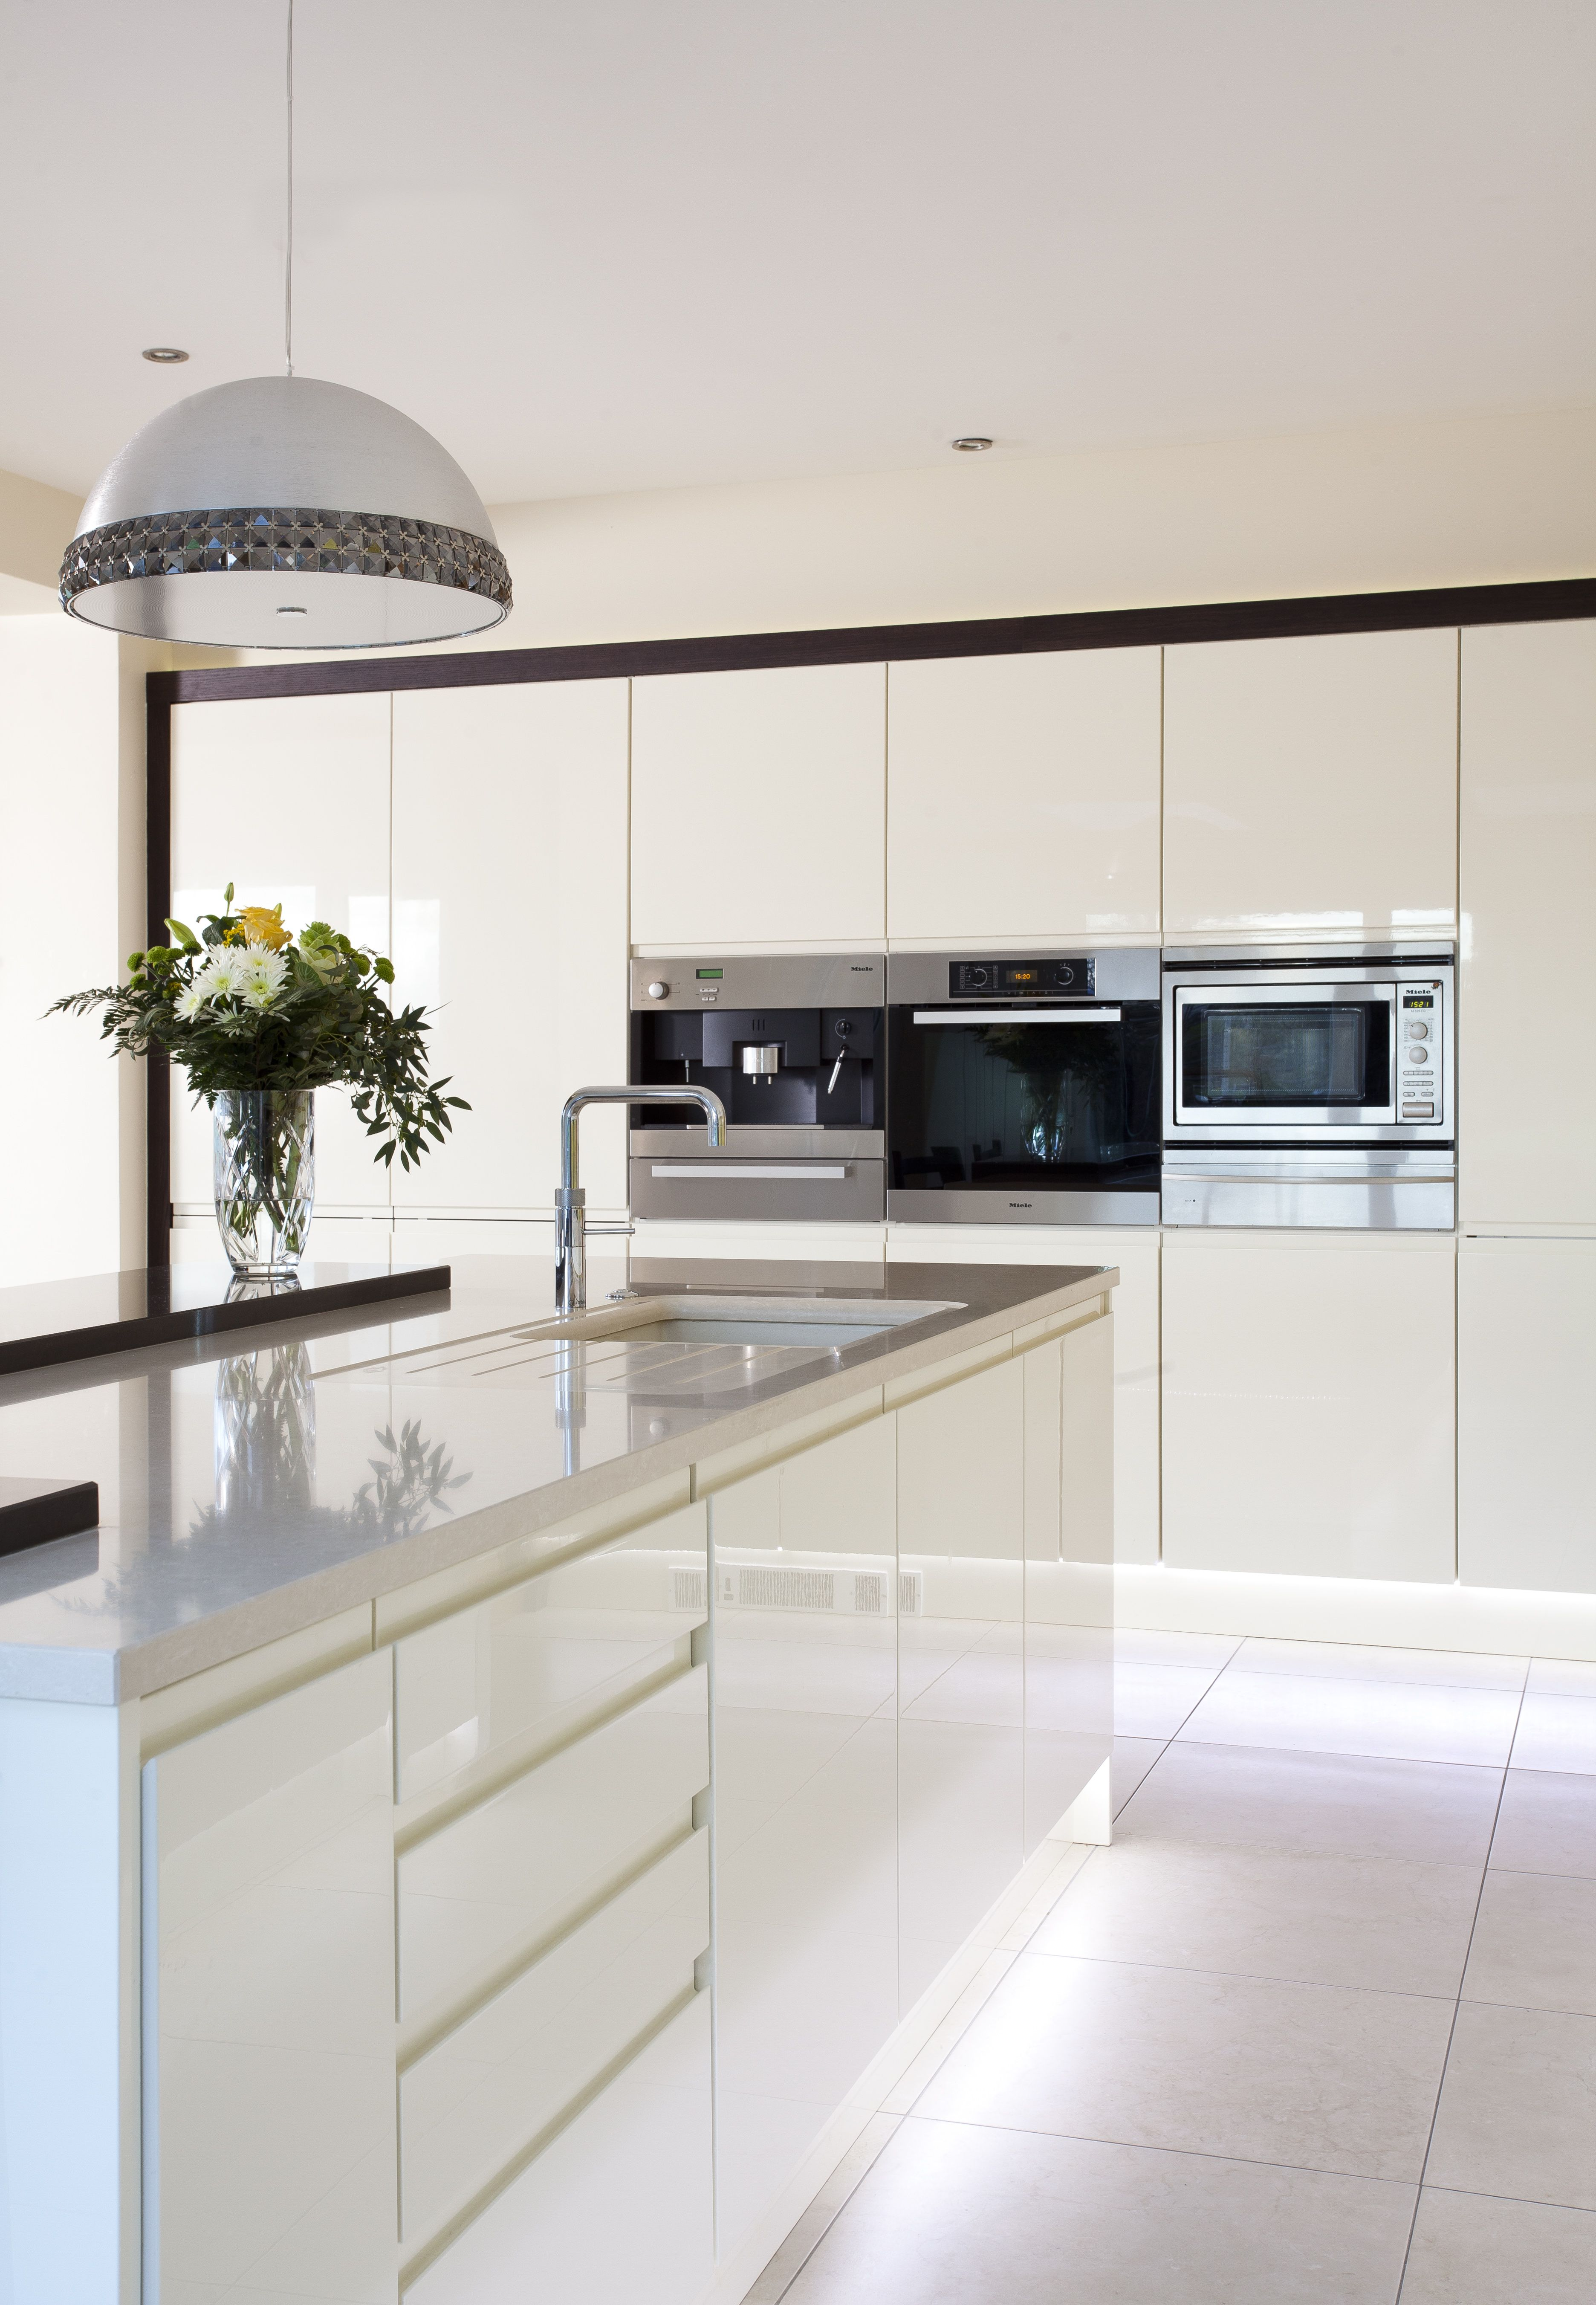 Sleek lines with this white gloss handleless kitchen and